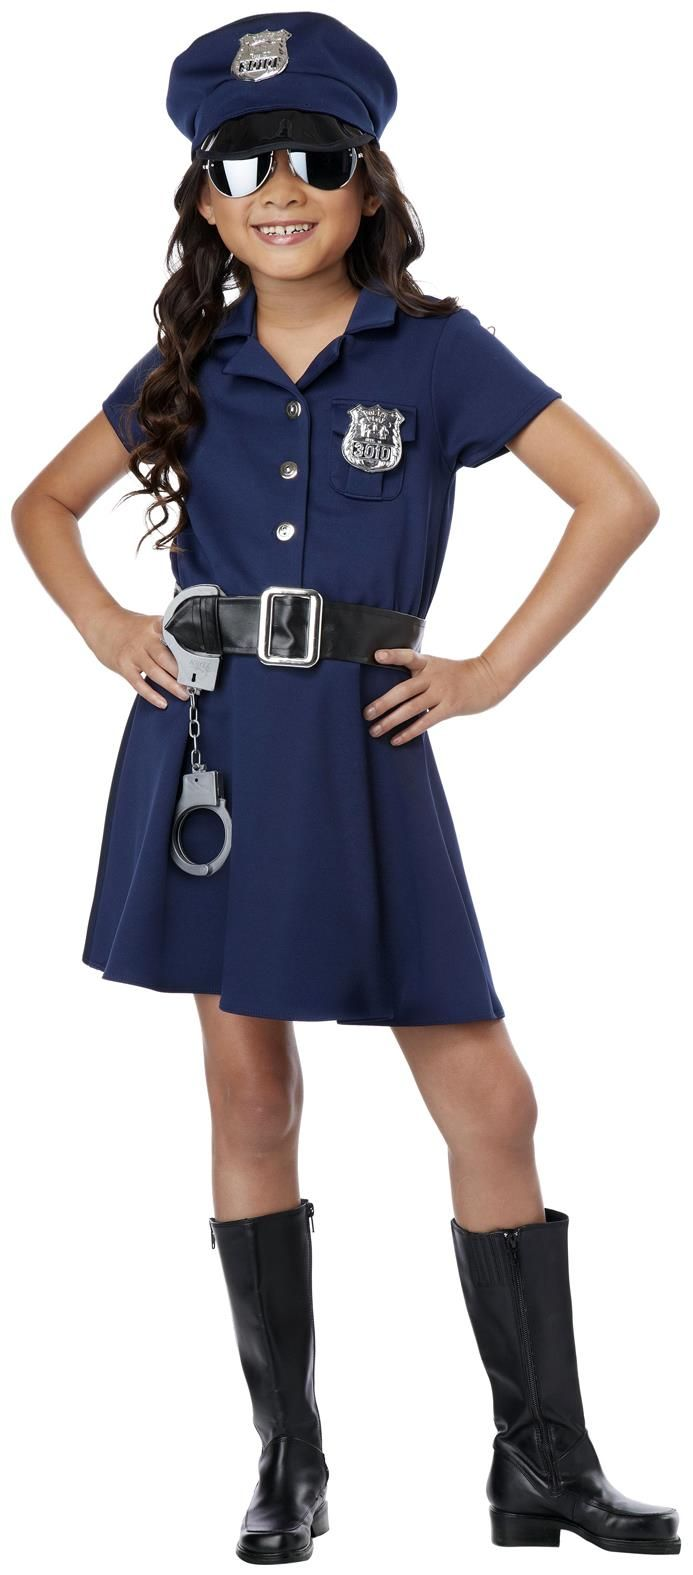 PartyBell.com - Girl Police Officer #Costume